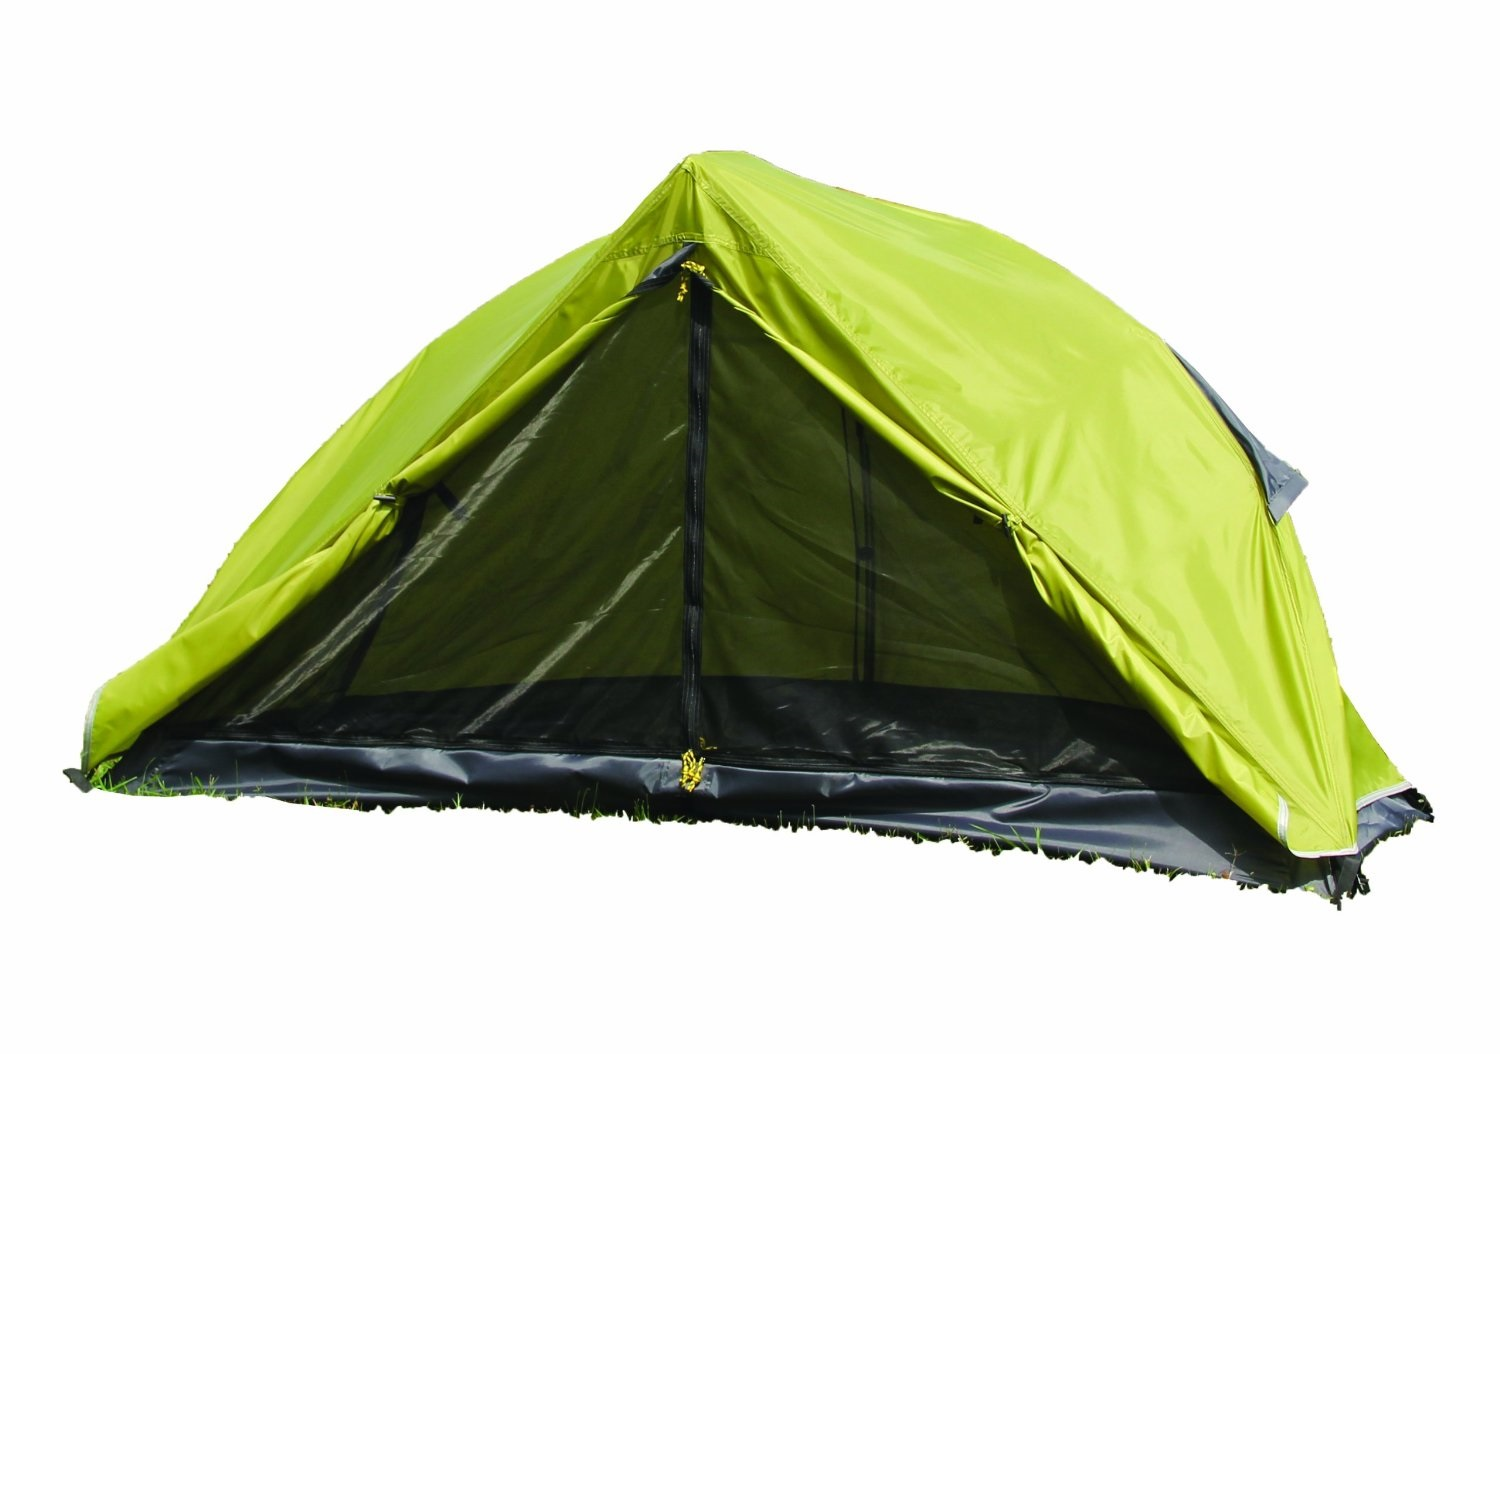 First Gear Cliff Hanger II Three Season Backpacking Tent